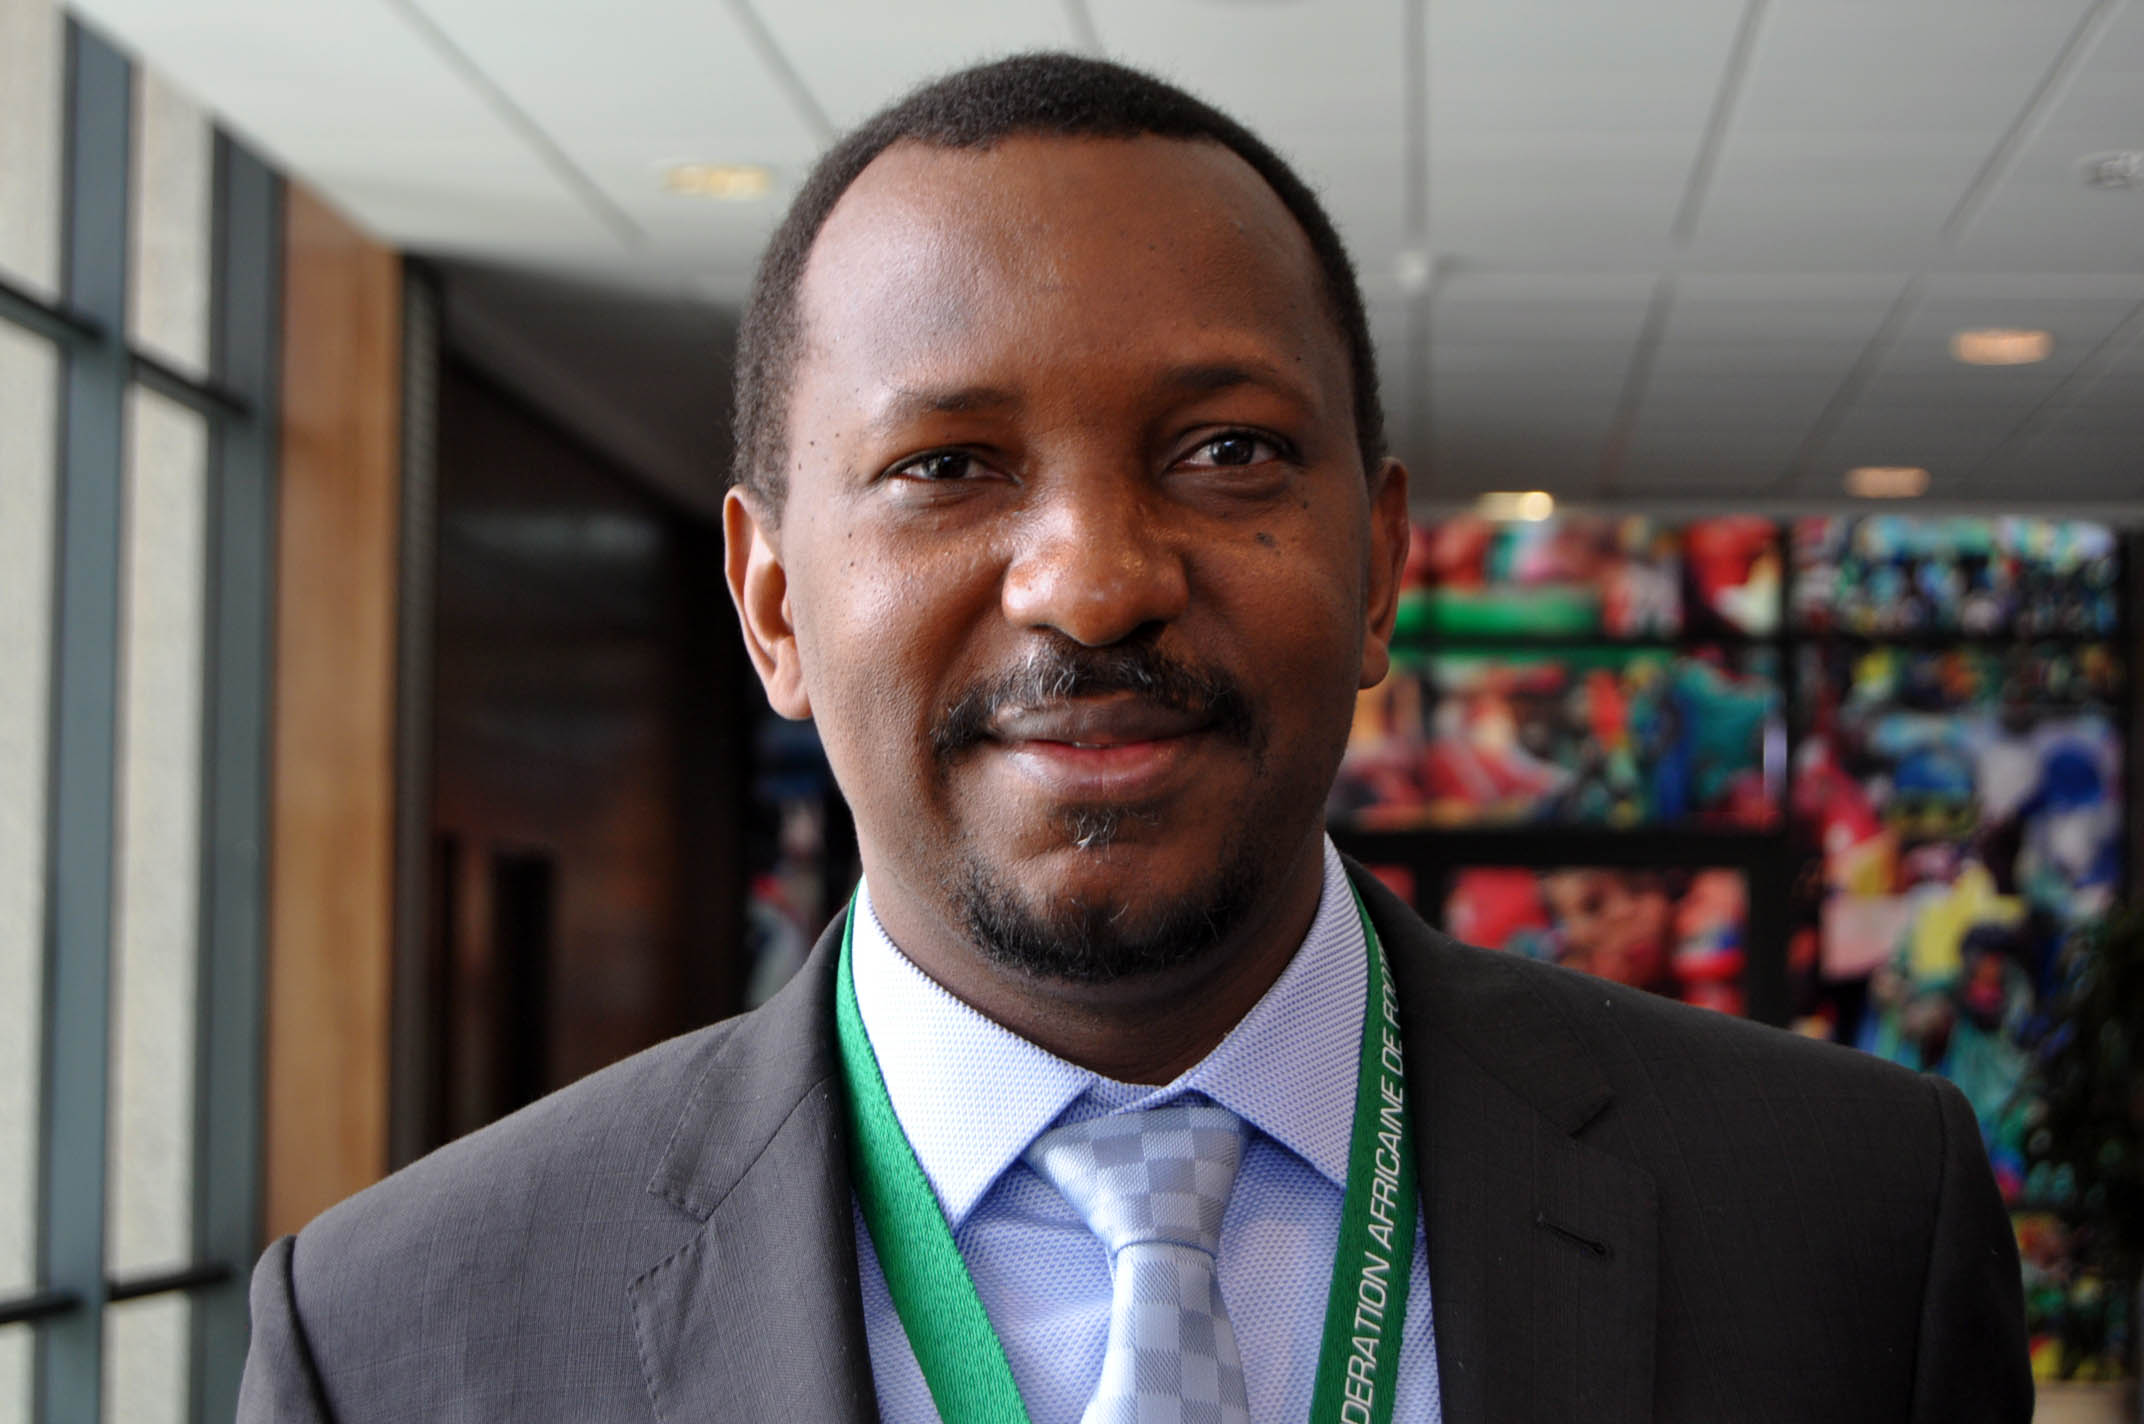 Broadcasting NPFL Matches on live TV is expensive, Says LMC Boss Dikko